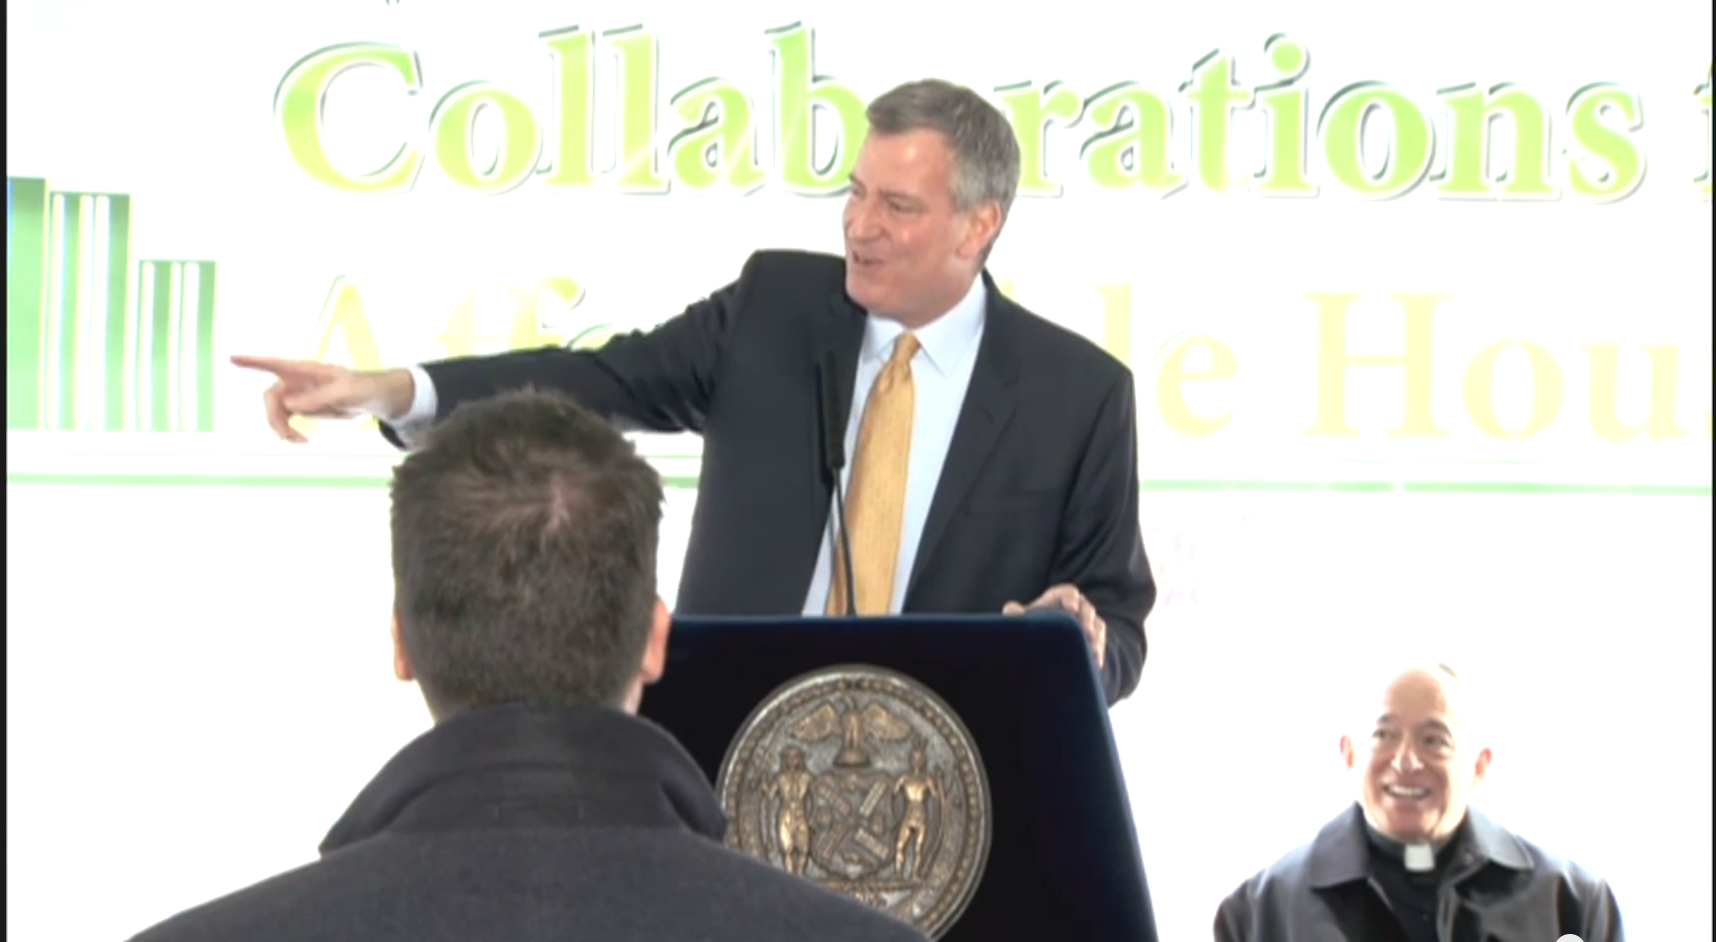 Mayor Bill de Blasio tries to move on to the next question while a Fox News producer persists. (Screenshot: Youtube)